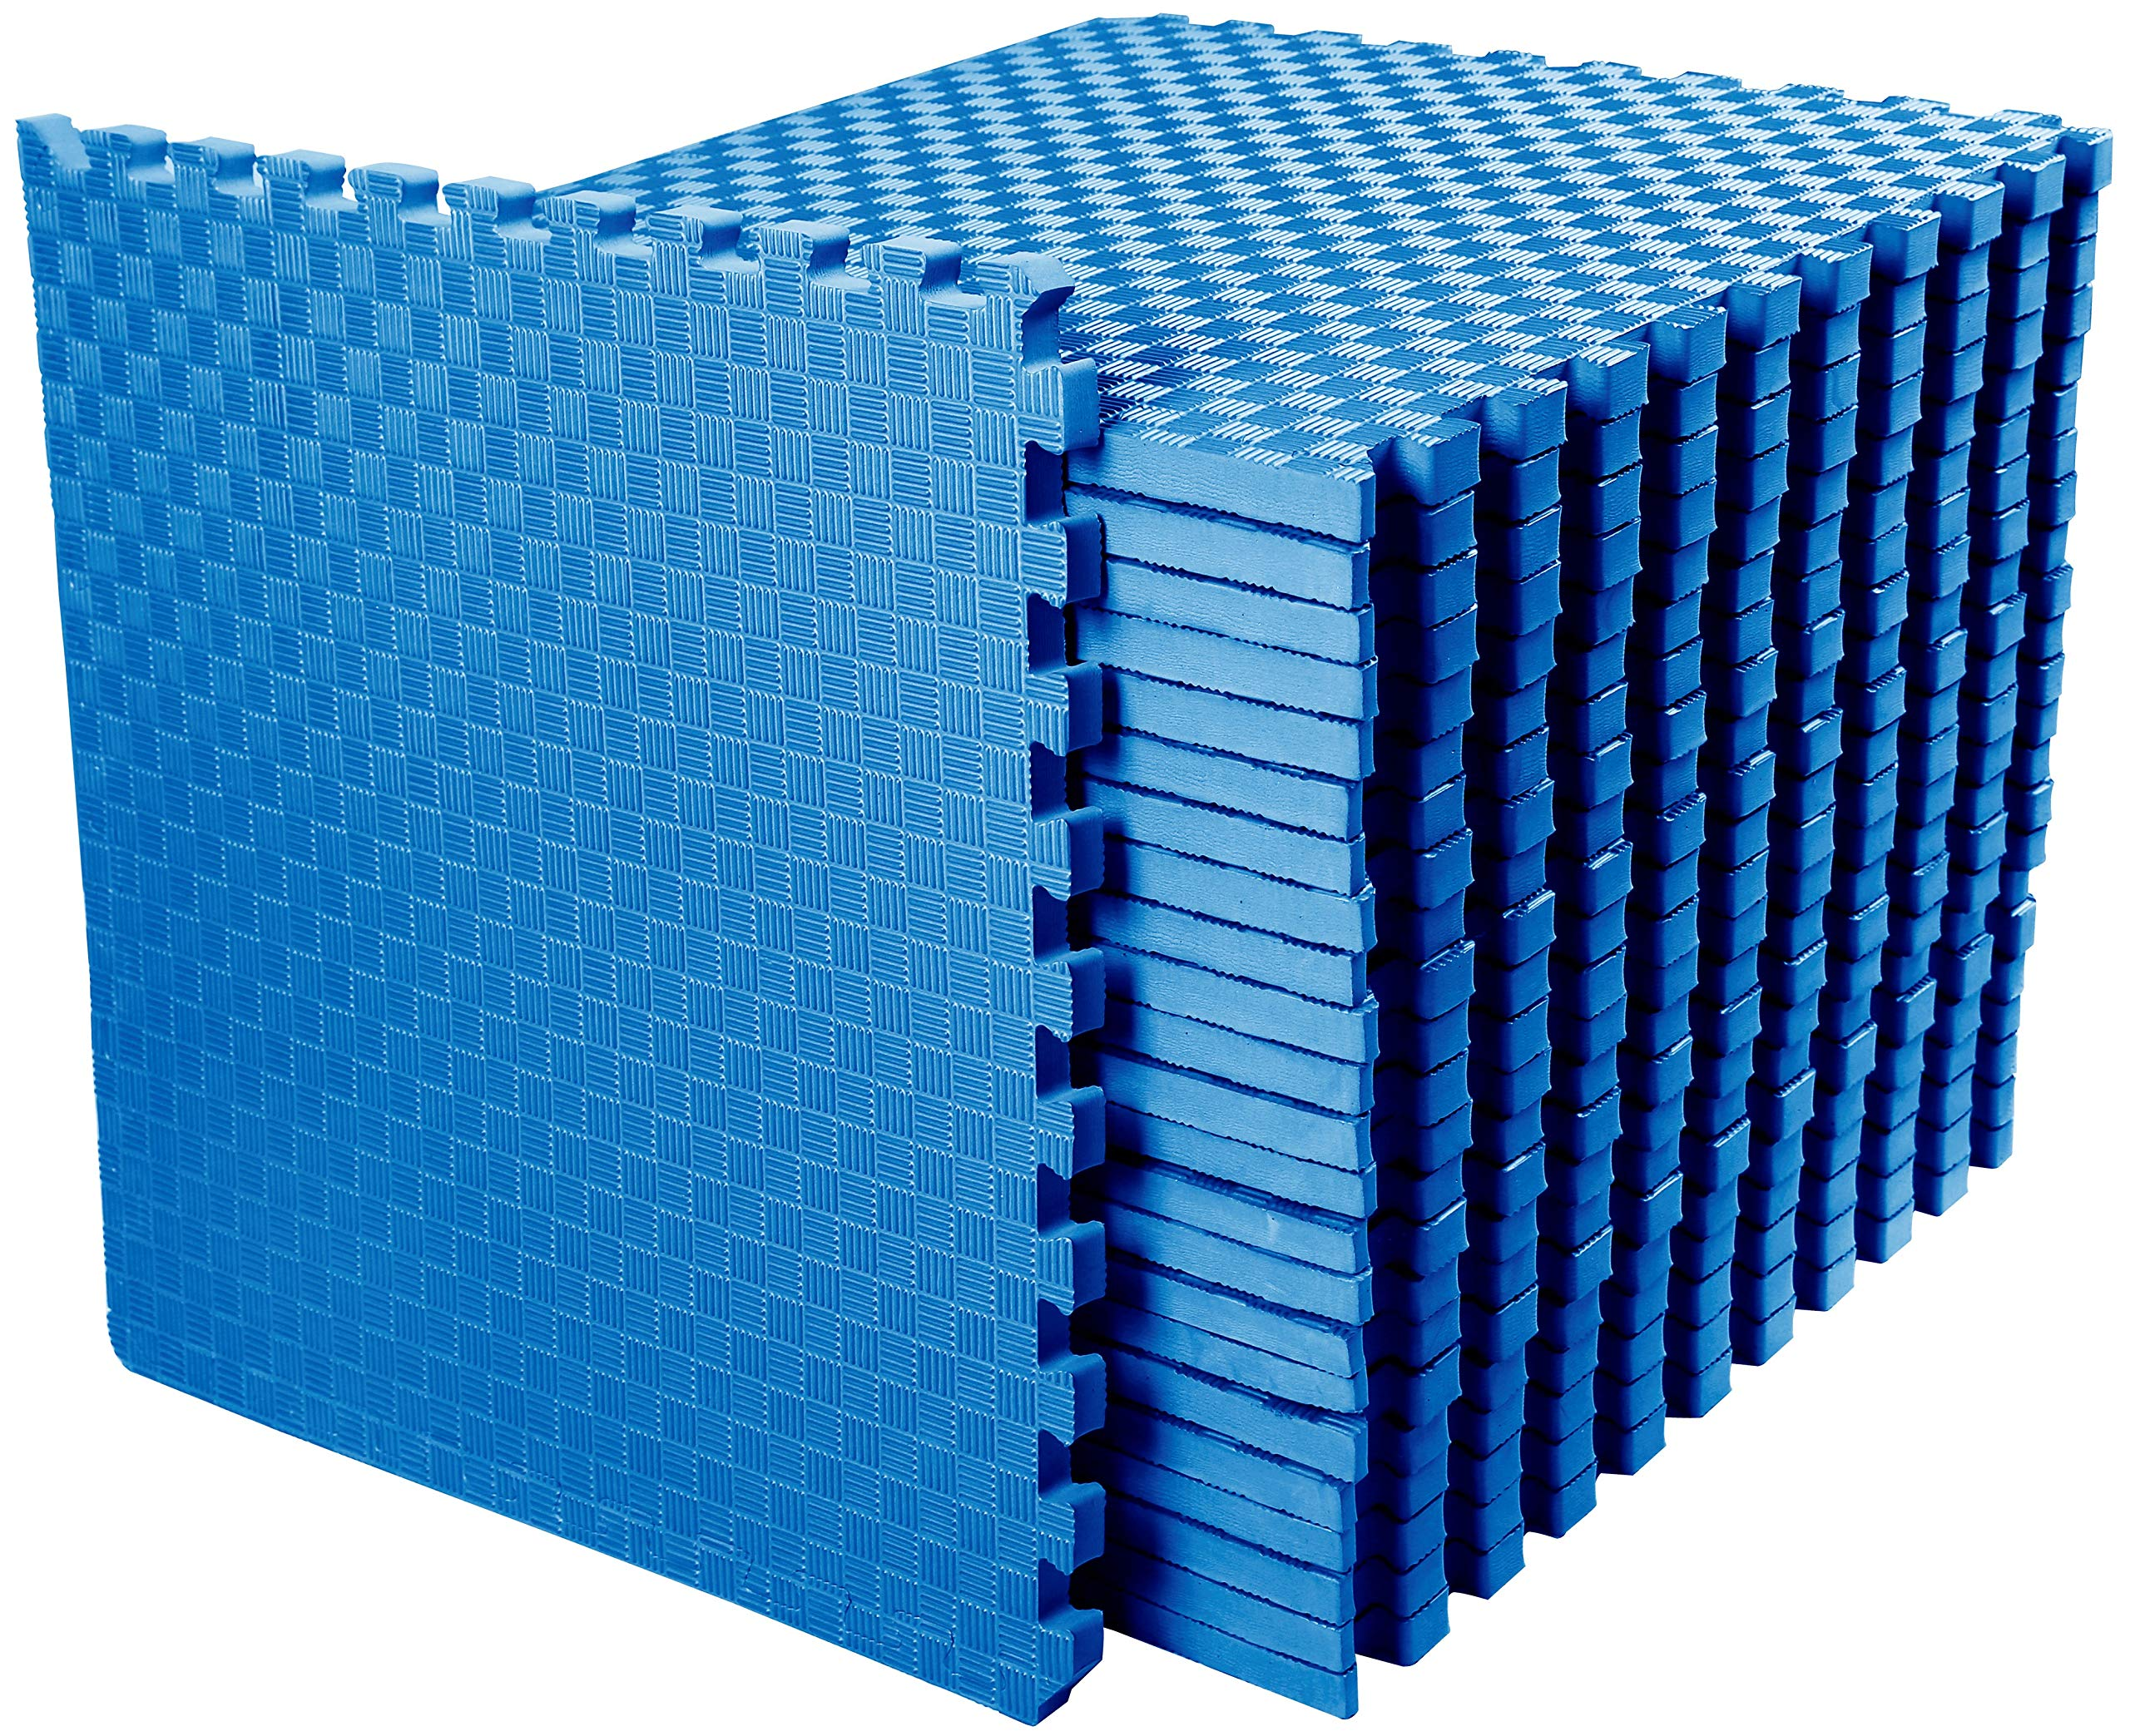 BalanceFrom 1'' Extra Thick Puzzle Exercise Mat with EVA Foam Interlocking Tiles for MMA, Exercise, Gymnastics and Home Gym Protective Flooring, 72 Square Feet (Blue)